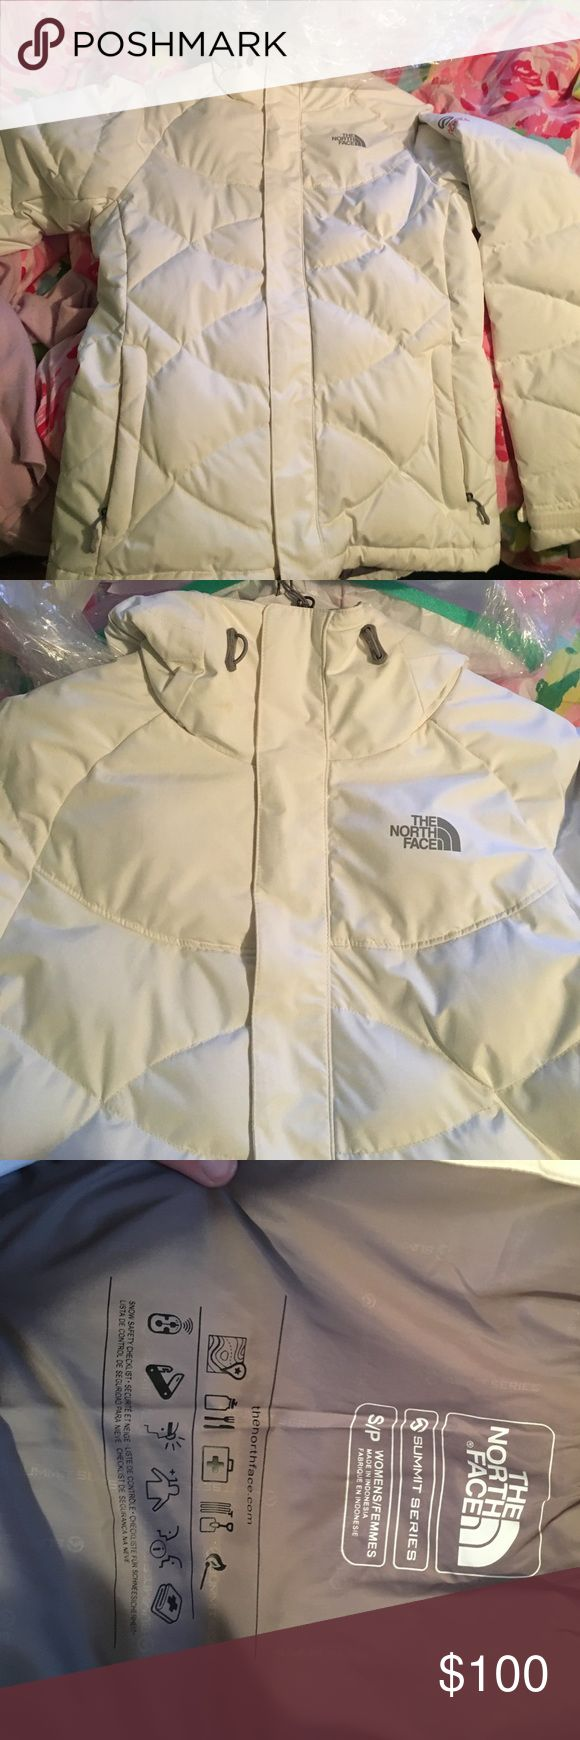 North face winter jacket White puffer jacket. North face summit series- very warm, very athletic aesthetic The North Face Jackets & Coats Puffers